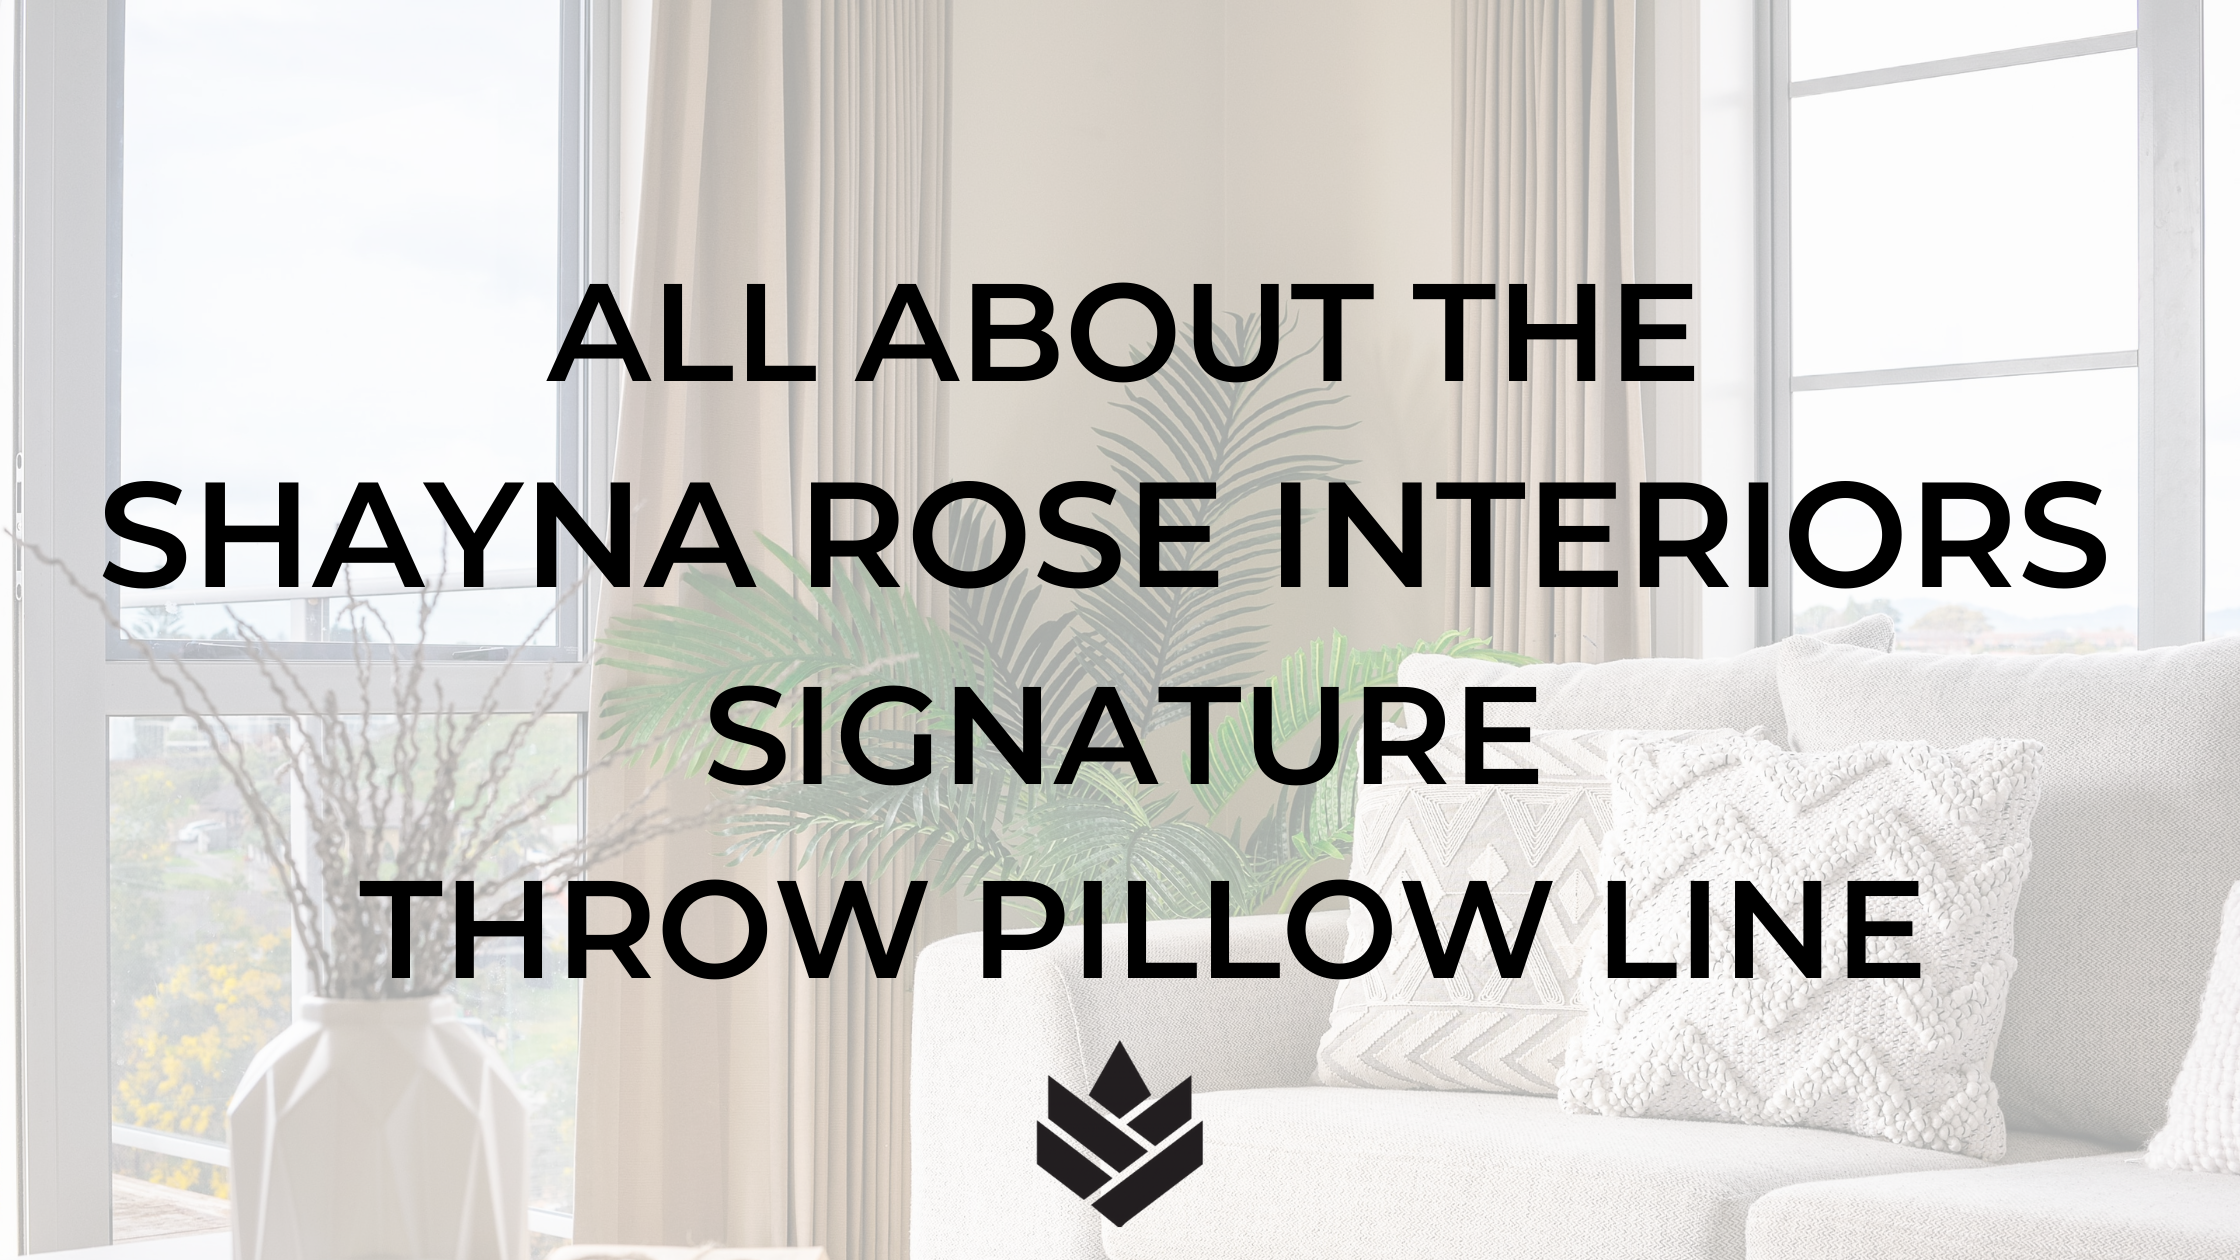 All About The Shayna Rose Interiors Signature Throw Pillows